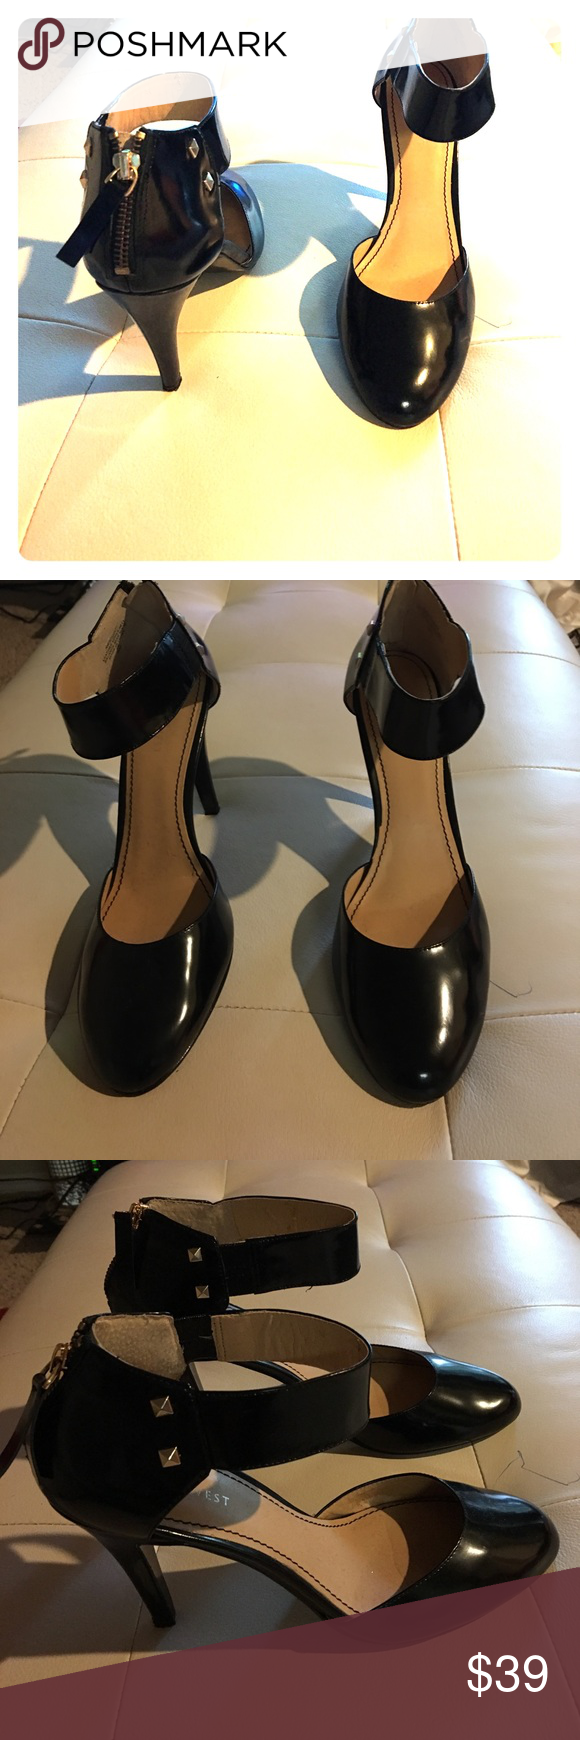 Gorgeous Nine West heels Gorgeous Nine West heels leather upper. Nine West Shoes Heels